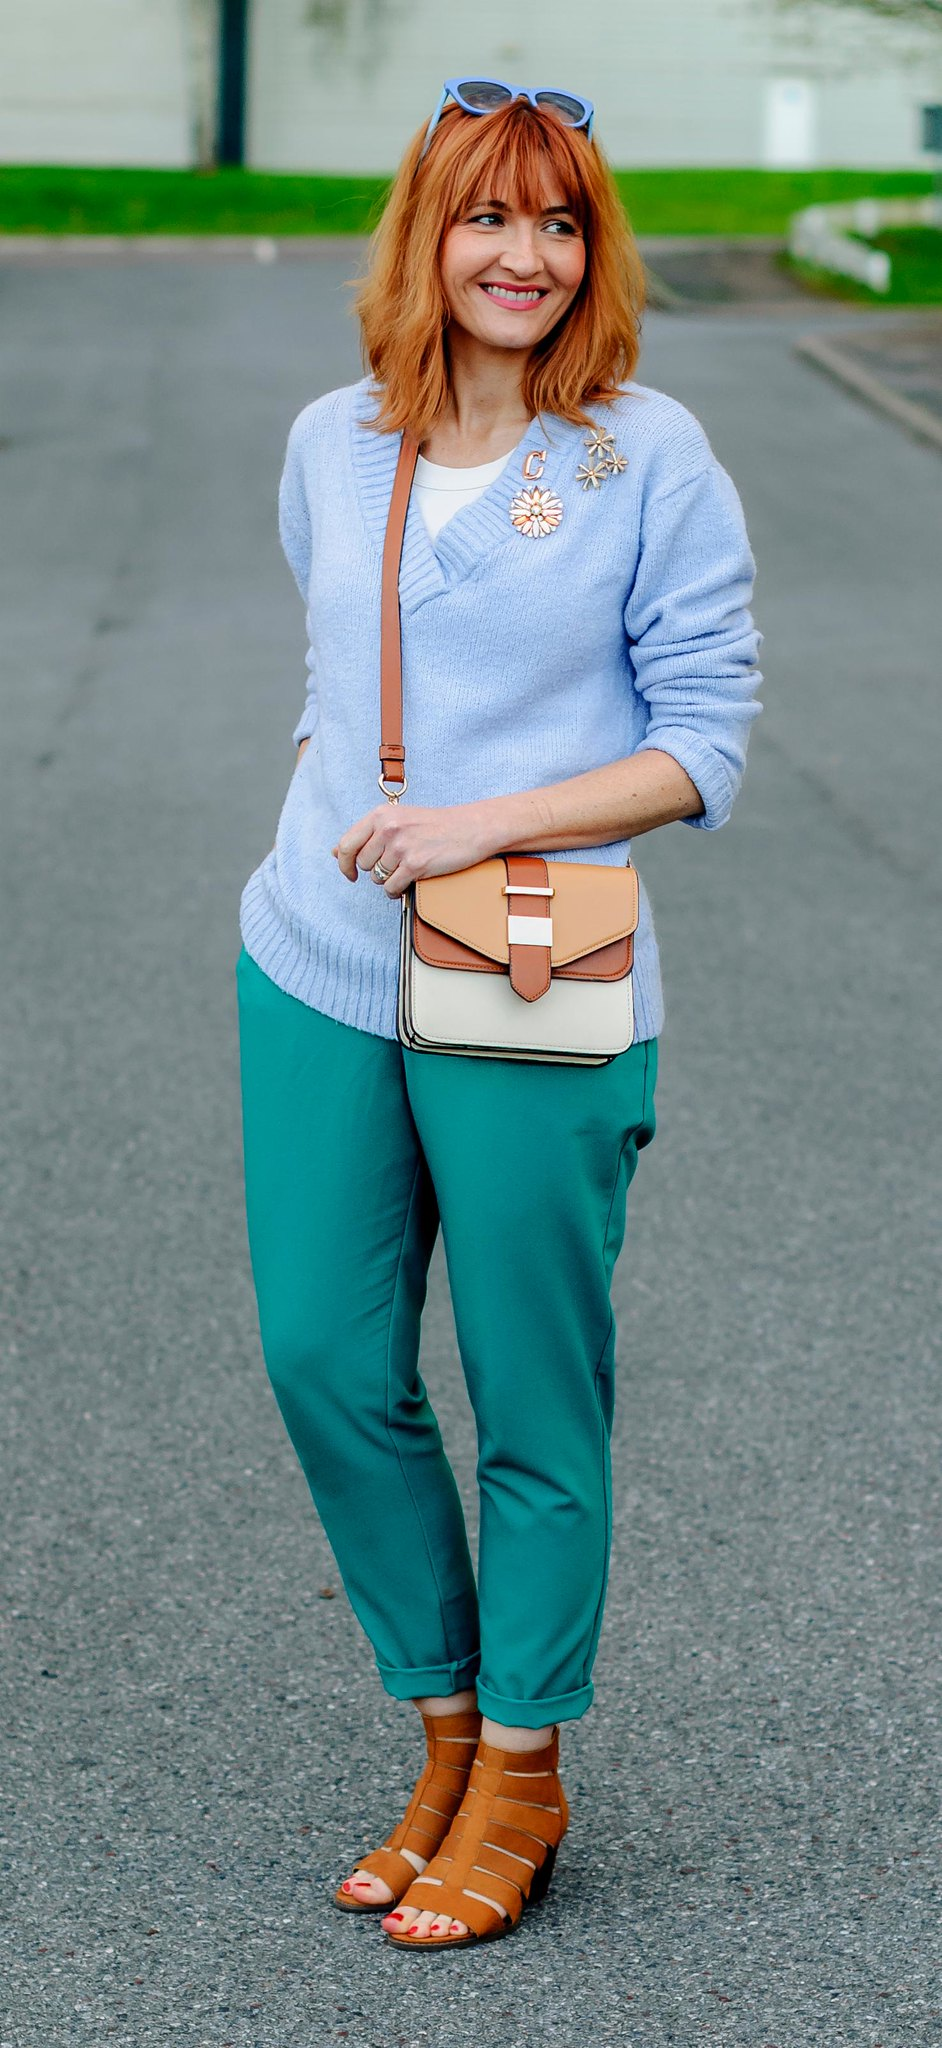 Spring look: Pale blue sweater \ emerald green peg trousers \ flower brooches \ tan strappy block heeled sandals \ two tone cross body bag | Not Dressed As Lamb, over 40 style